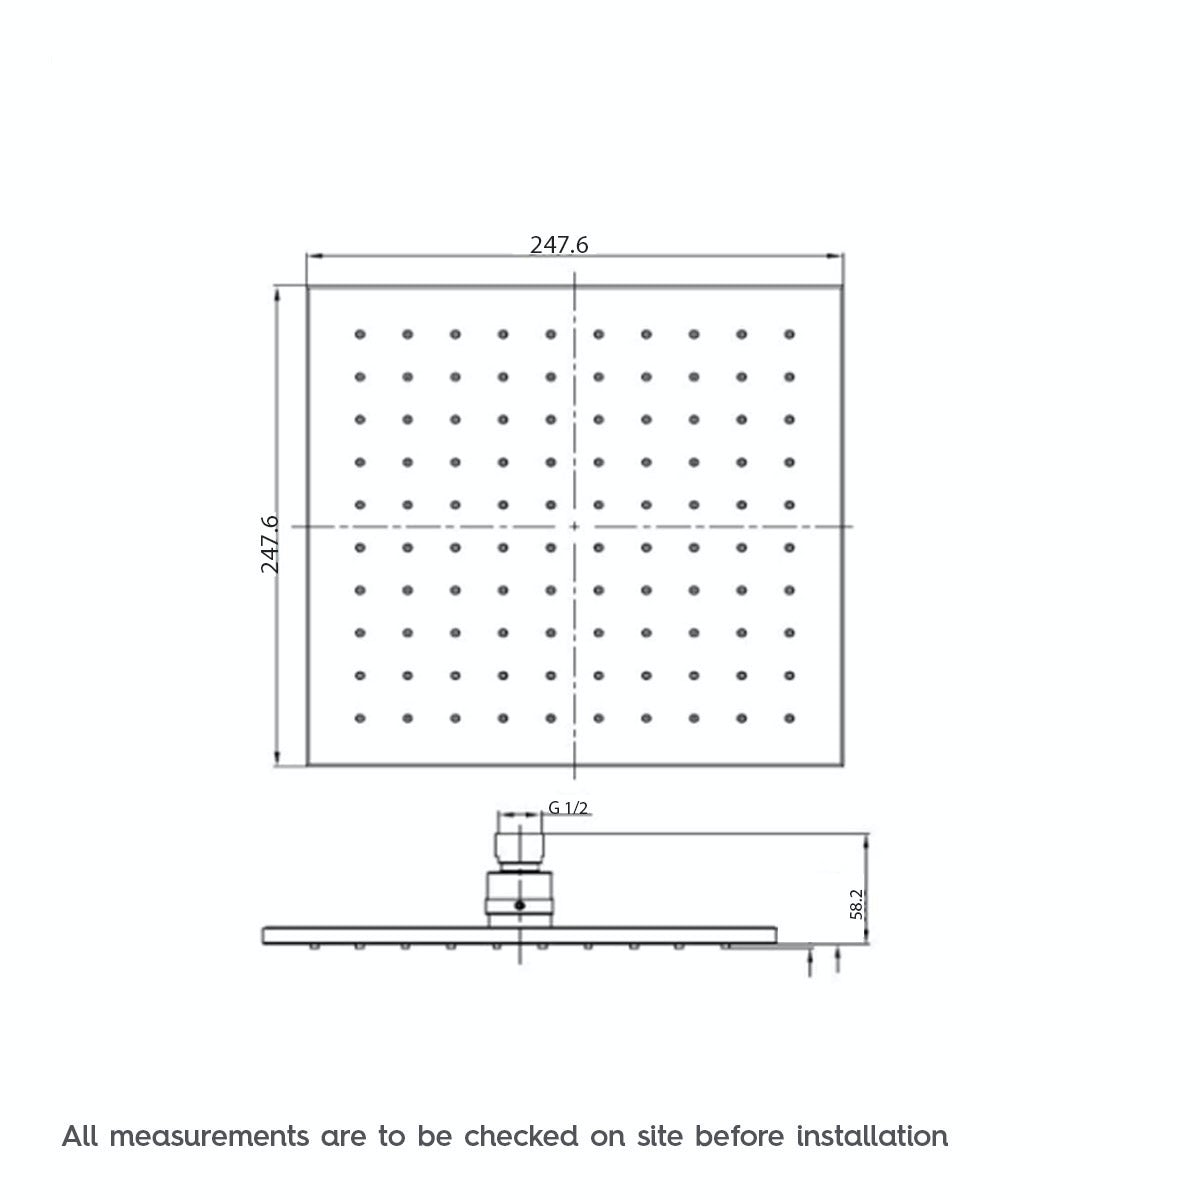 Dimensions for Mode Tetra square shower head 250mm